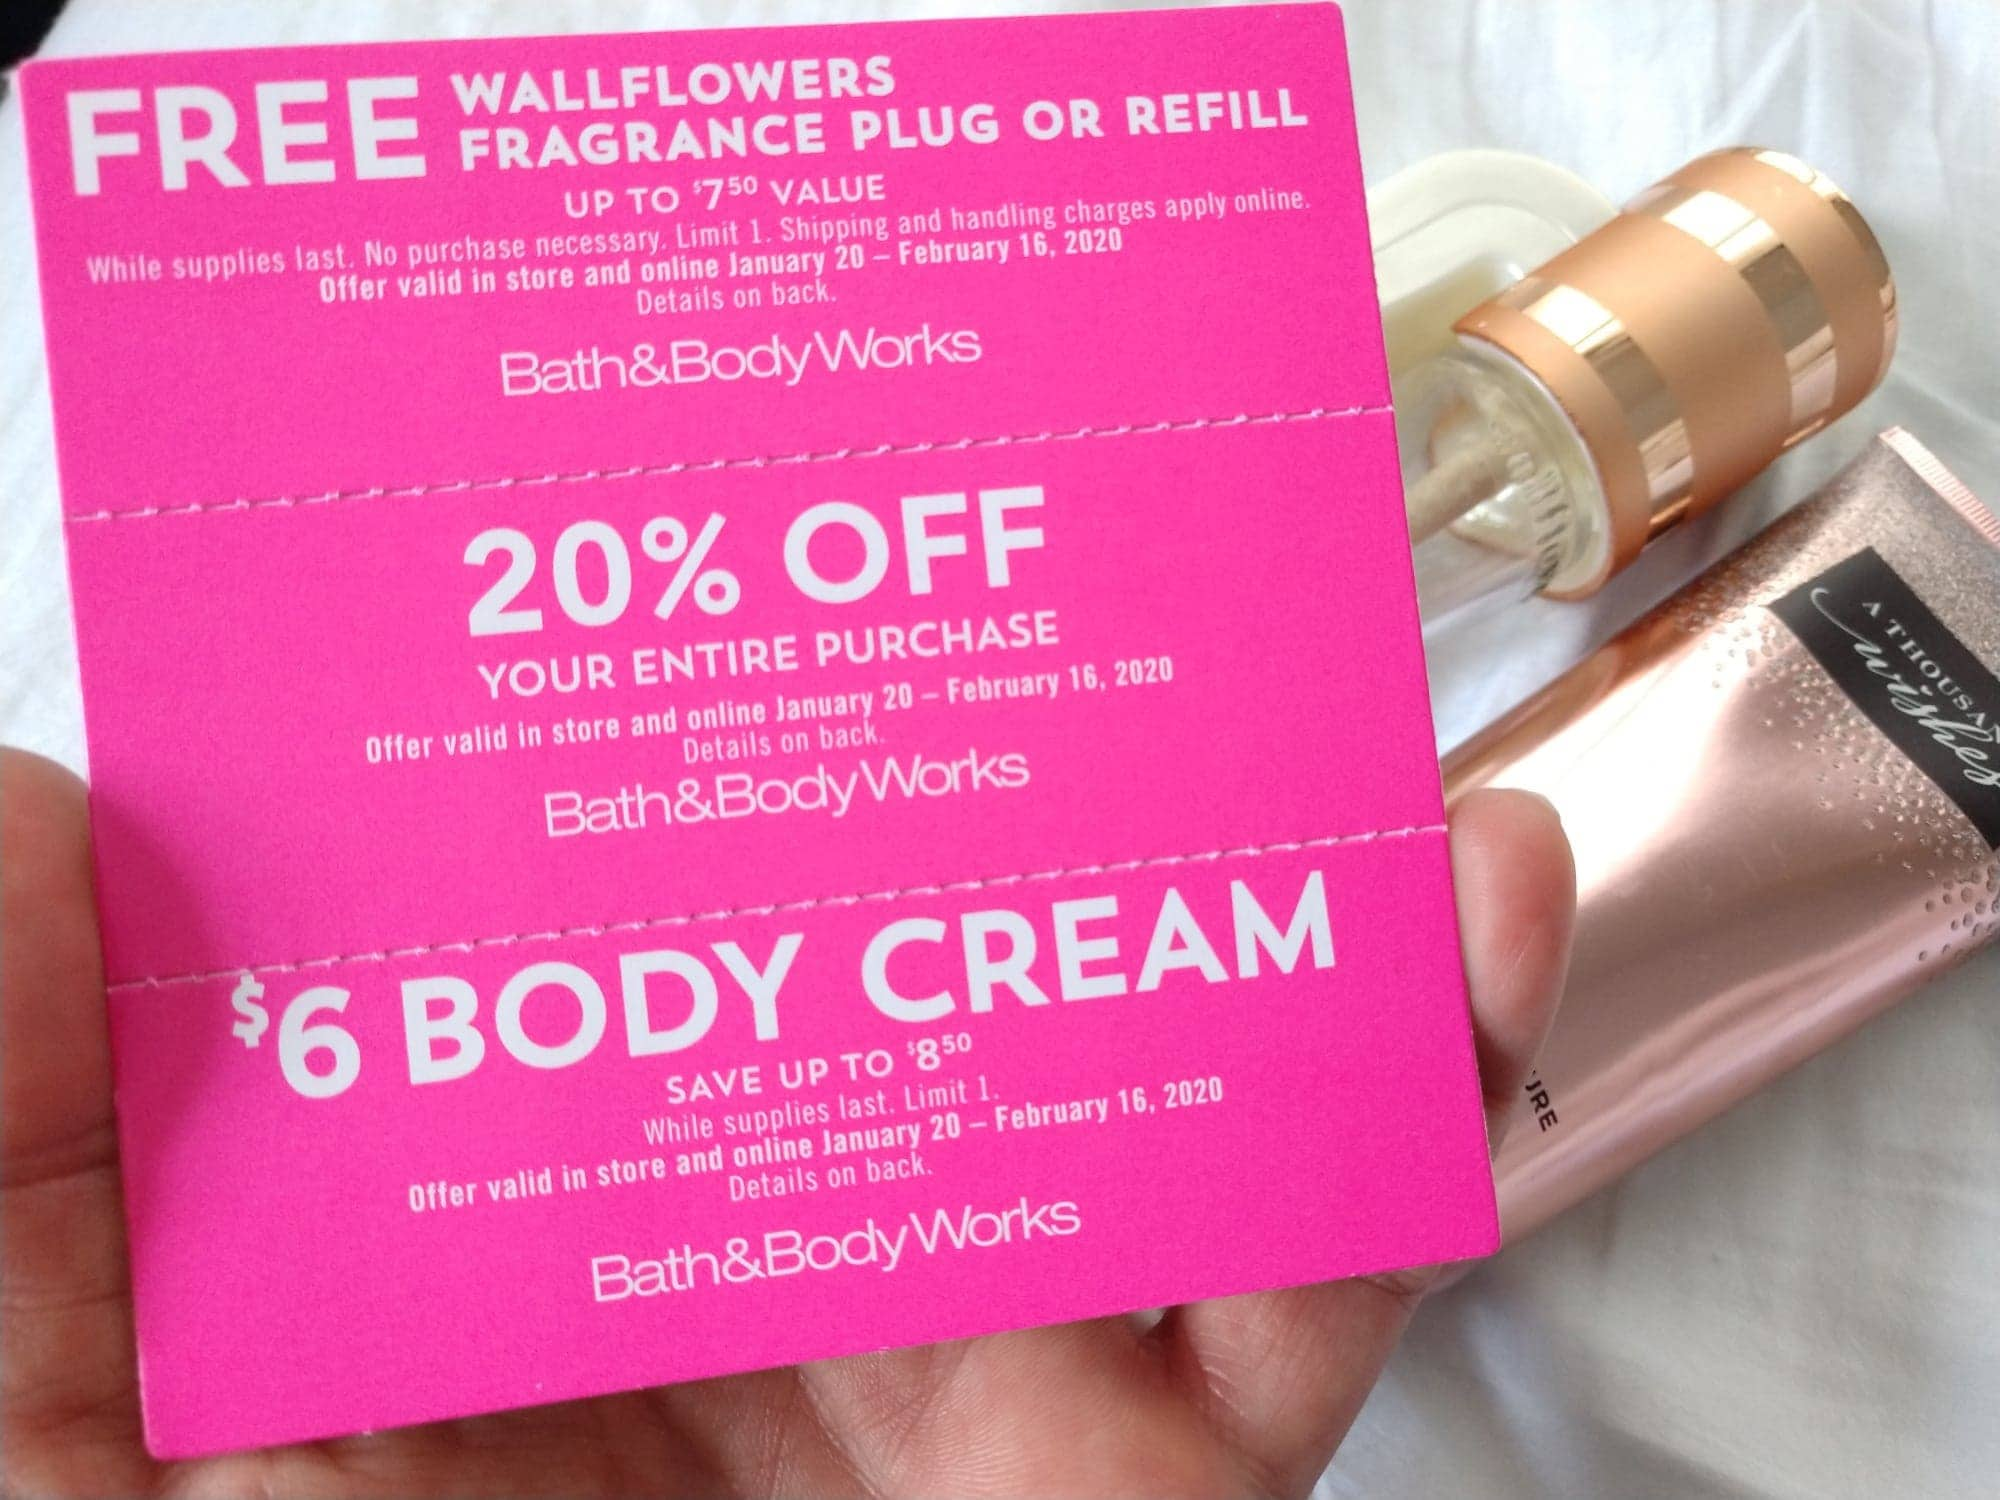 Free Bath Body Works Wallflower No Purchase Necessary